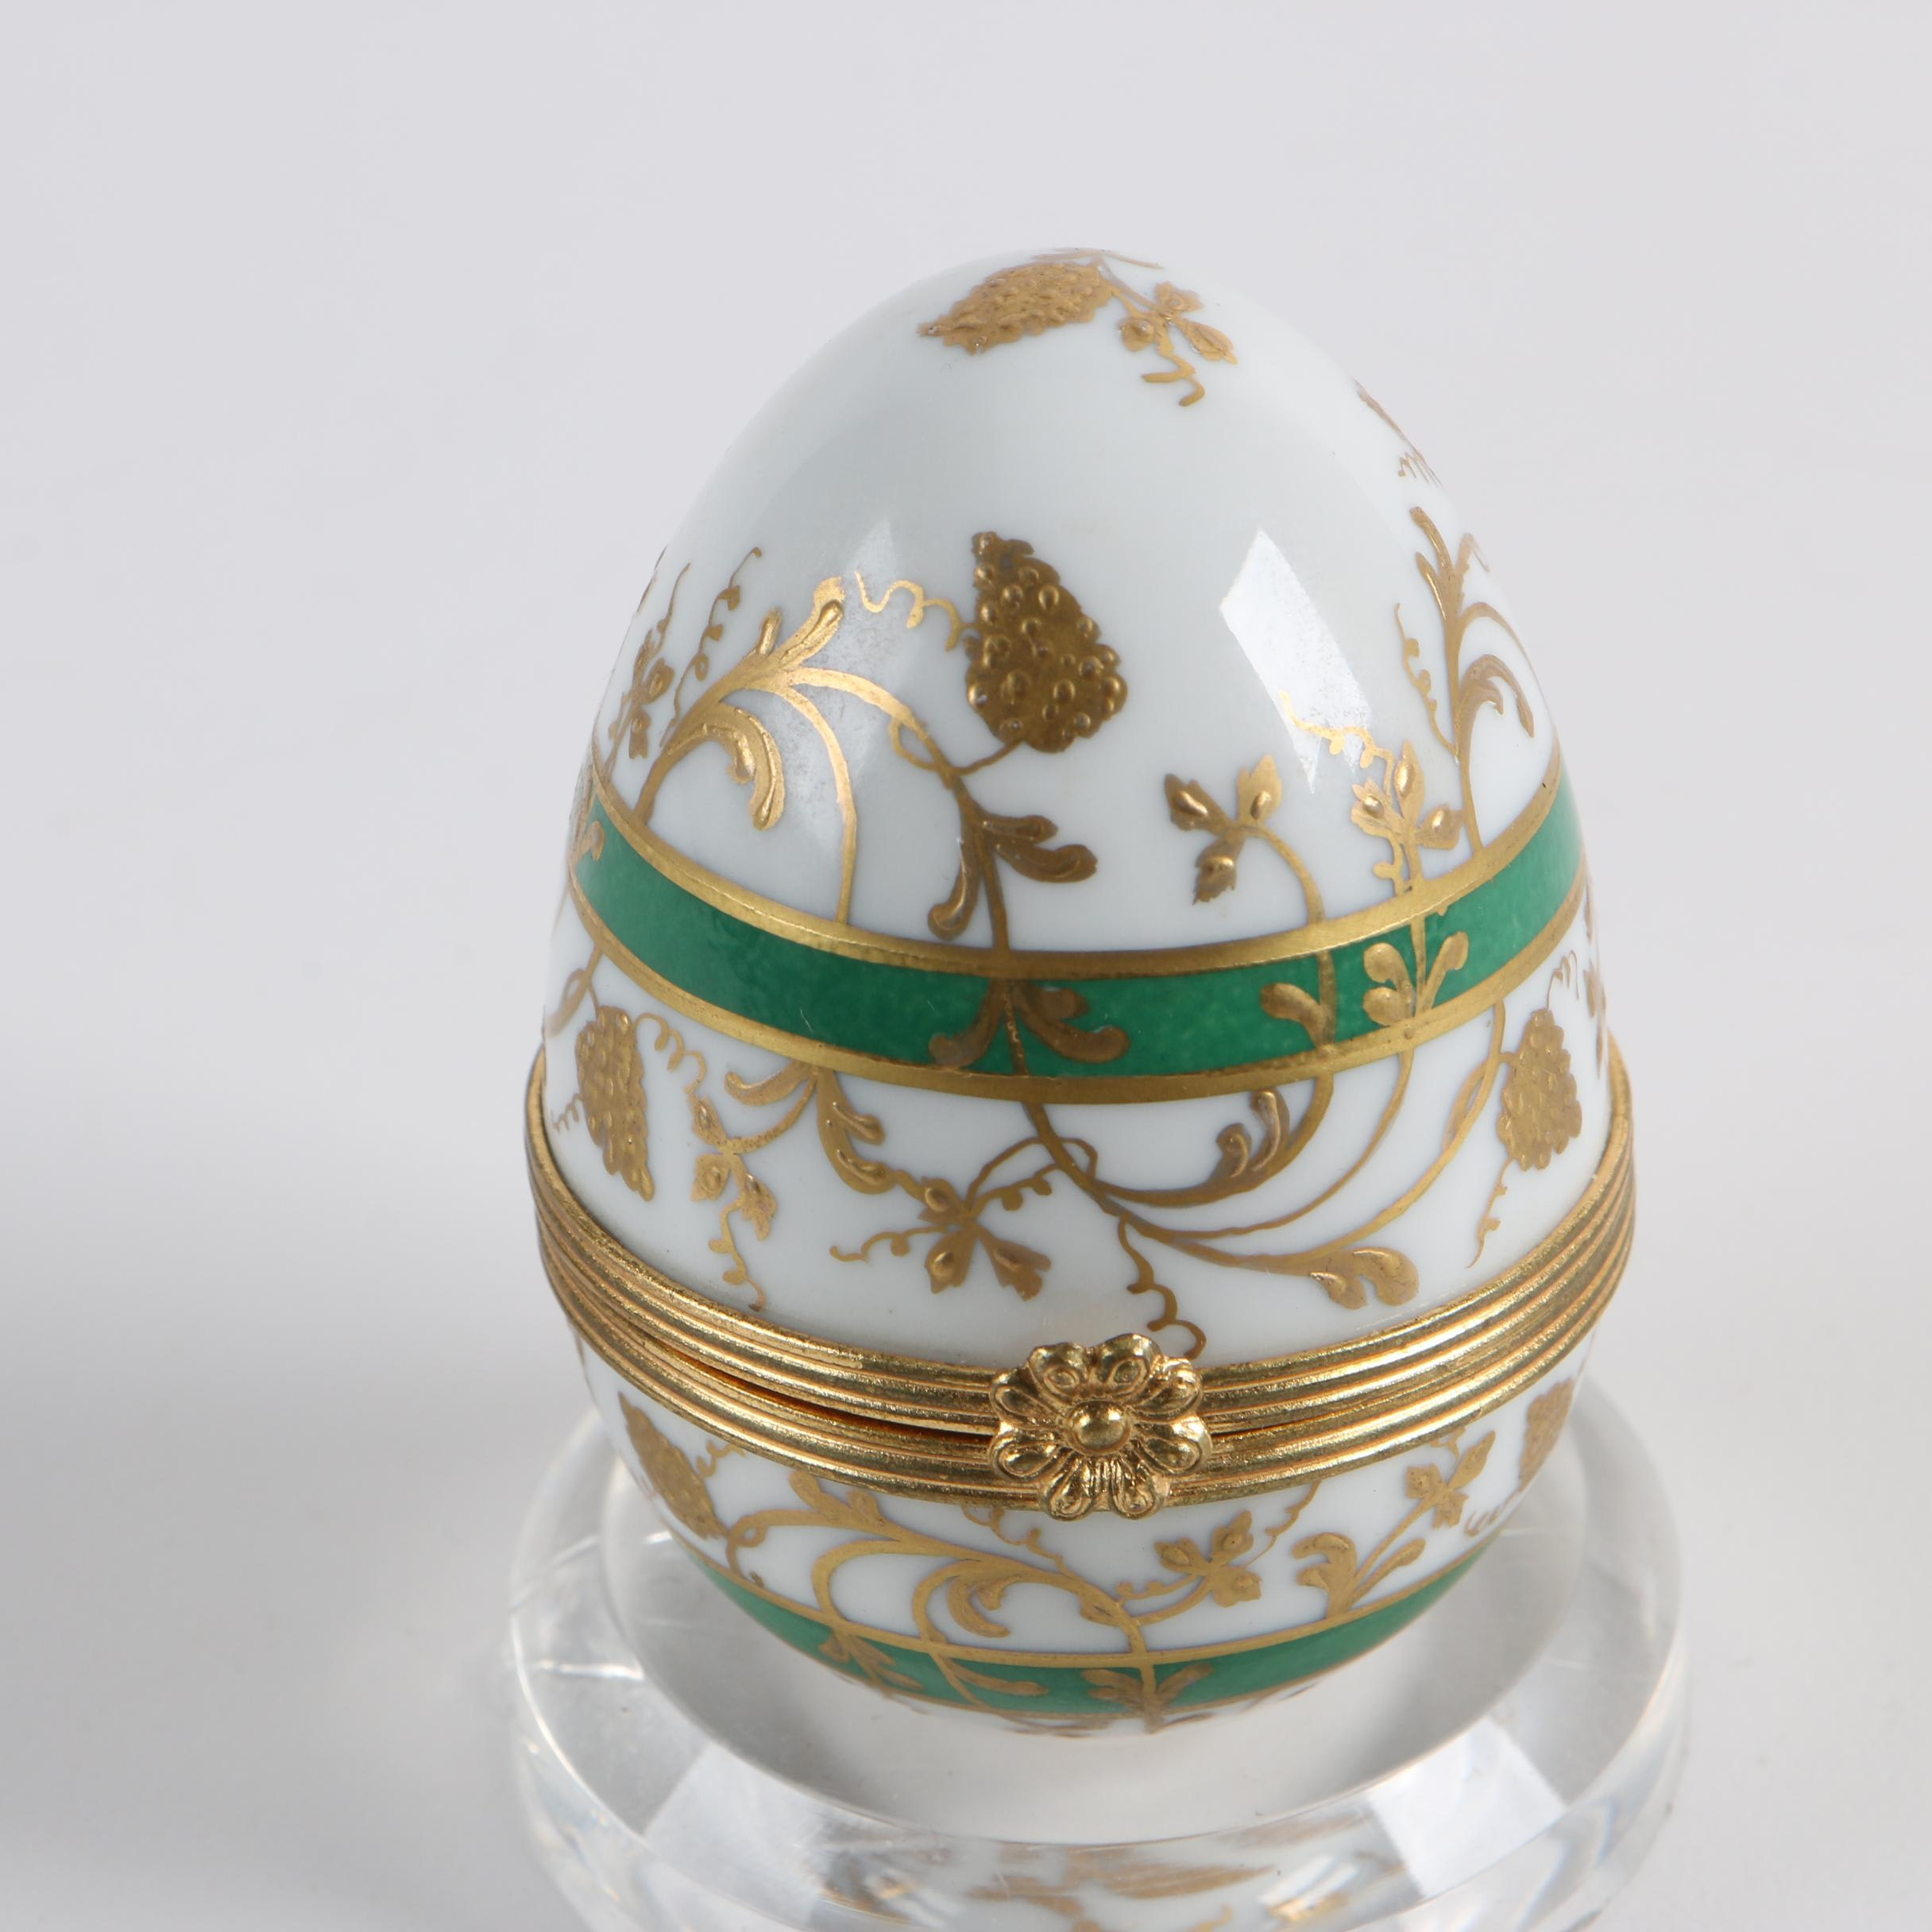 Le Tallec for Tiffany & Co. French Porcelain Egg Shaped Trinket Box